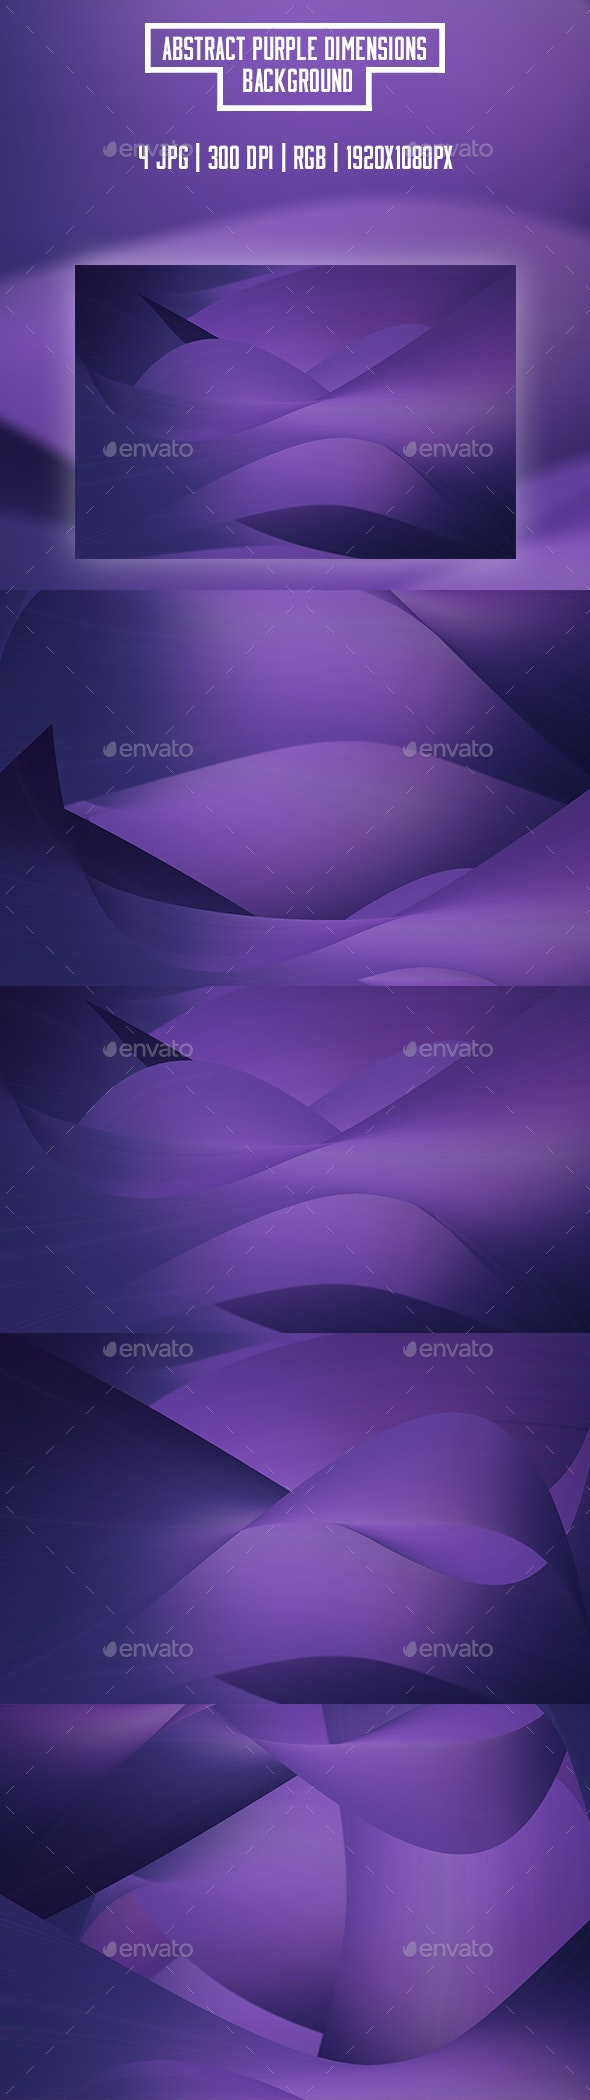 Abstract Purple Dimensions Backgrounds - Abstract Backgrounds